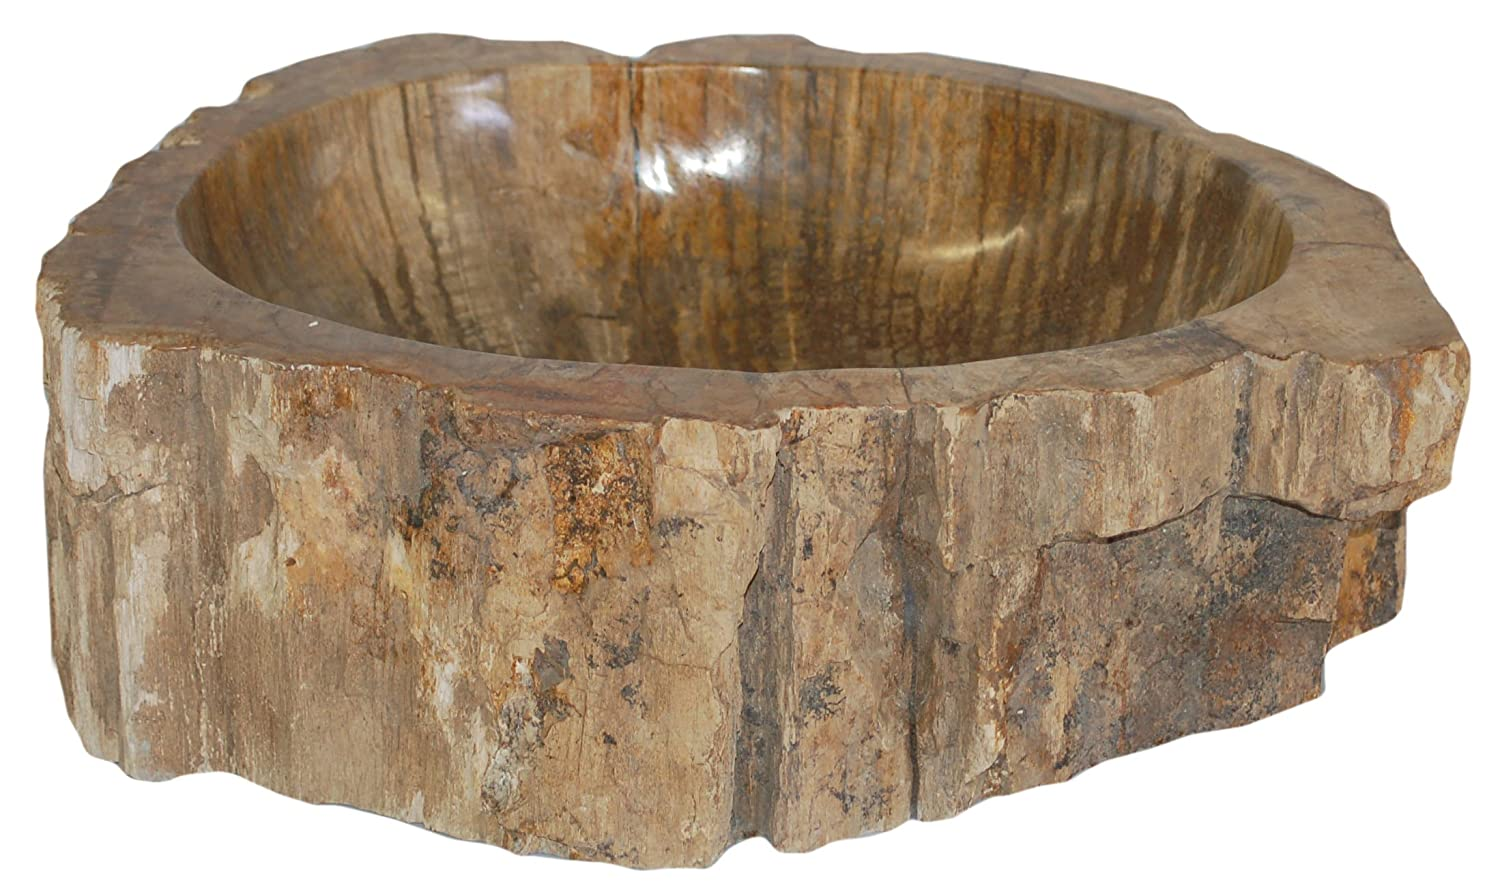 Natural Stone Sink – Petrified Wood